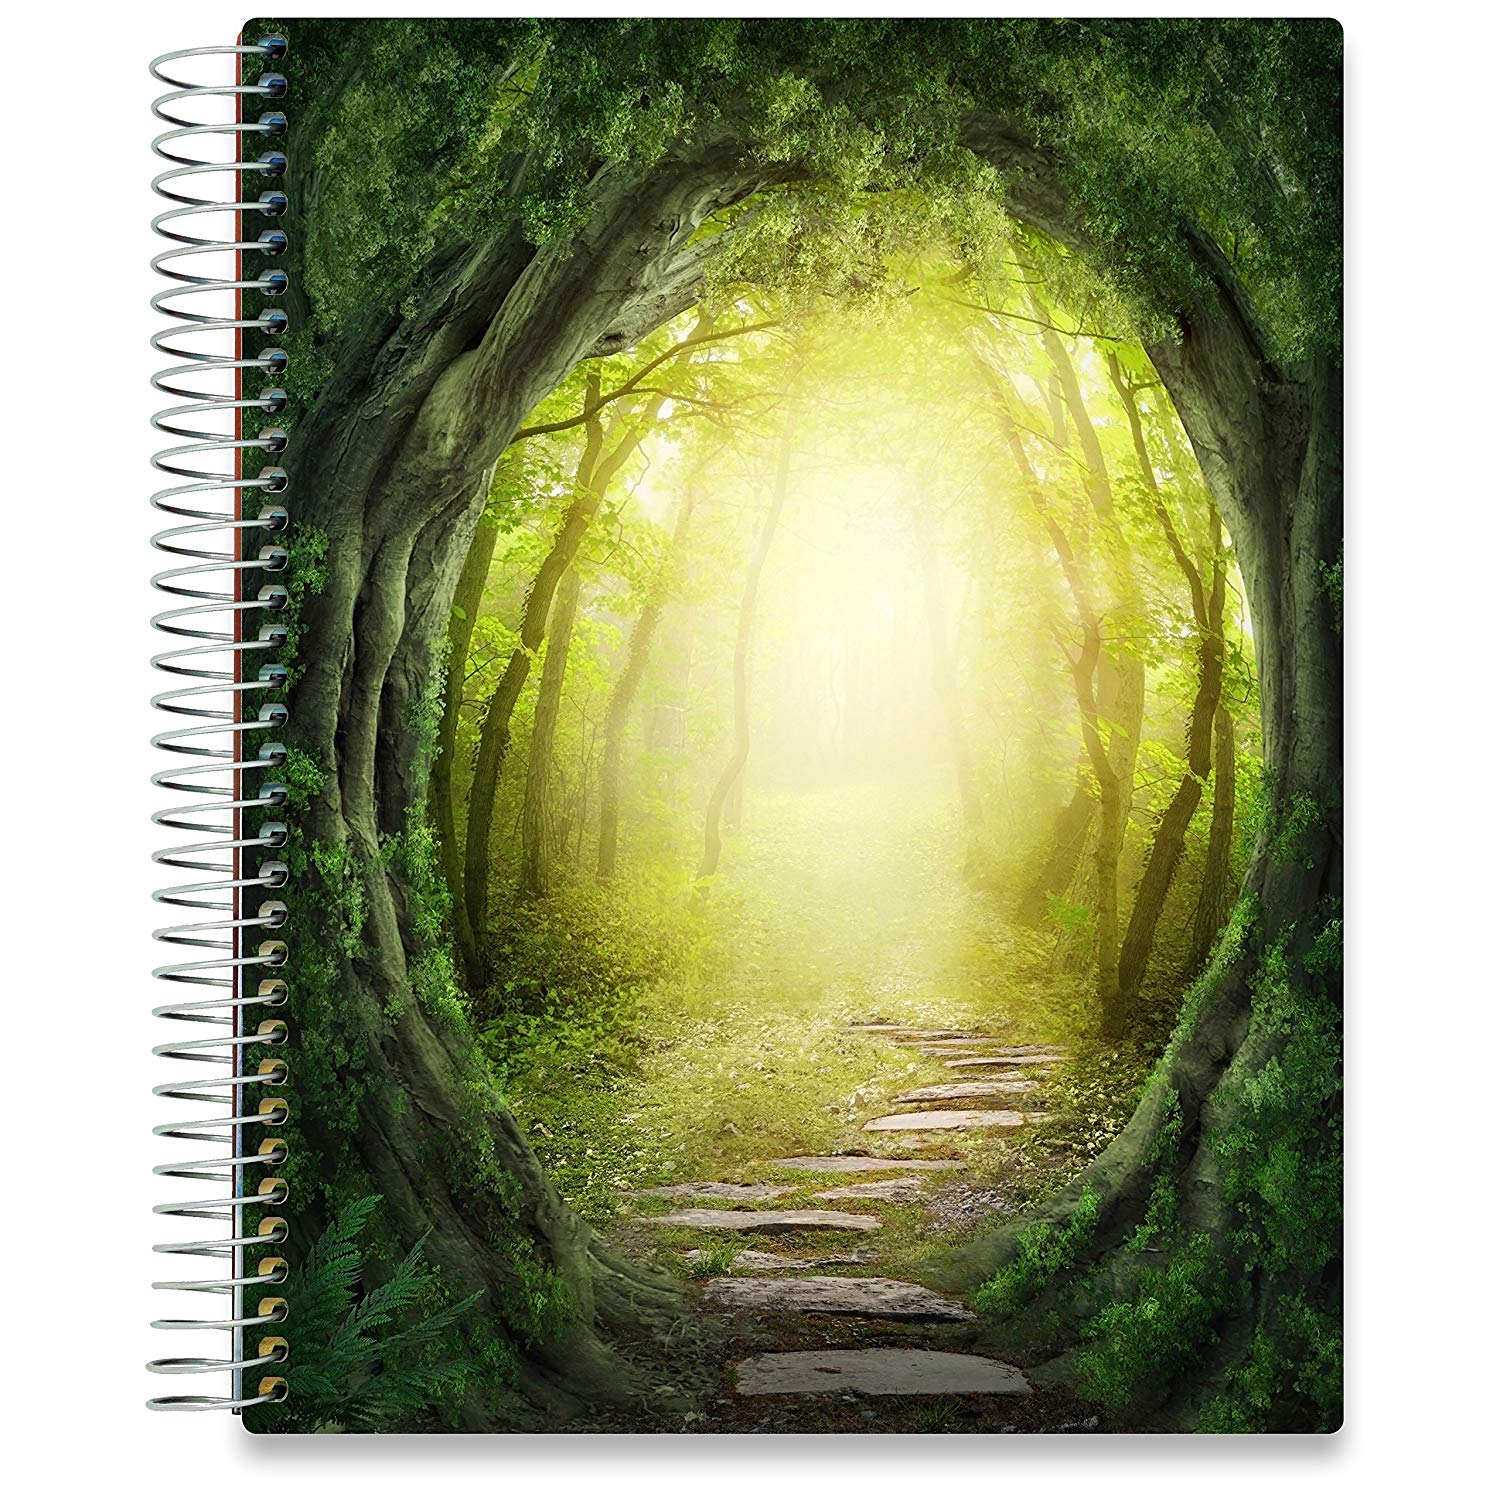 NEW: April 2020-2021 Planner - 8.5x11 - Magic Forest-Office Product-Tools4Wisdom